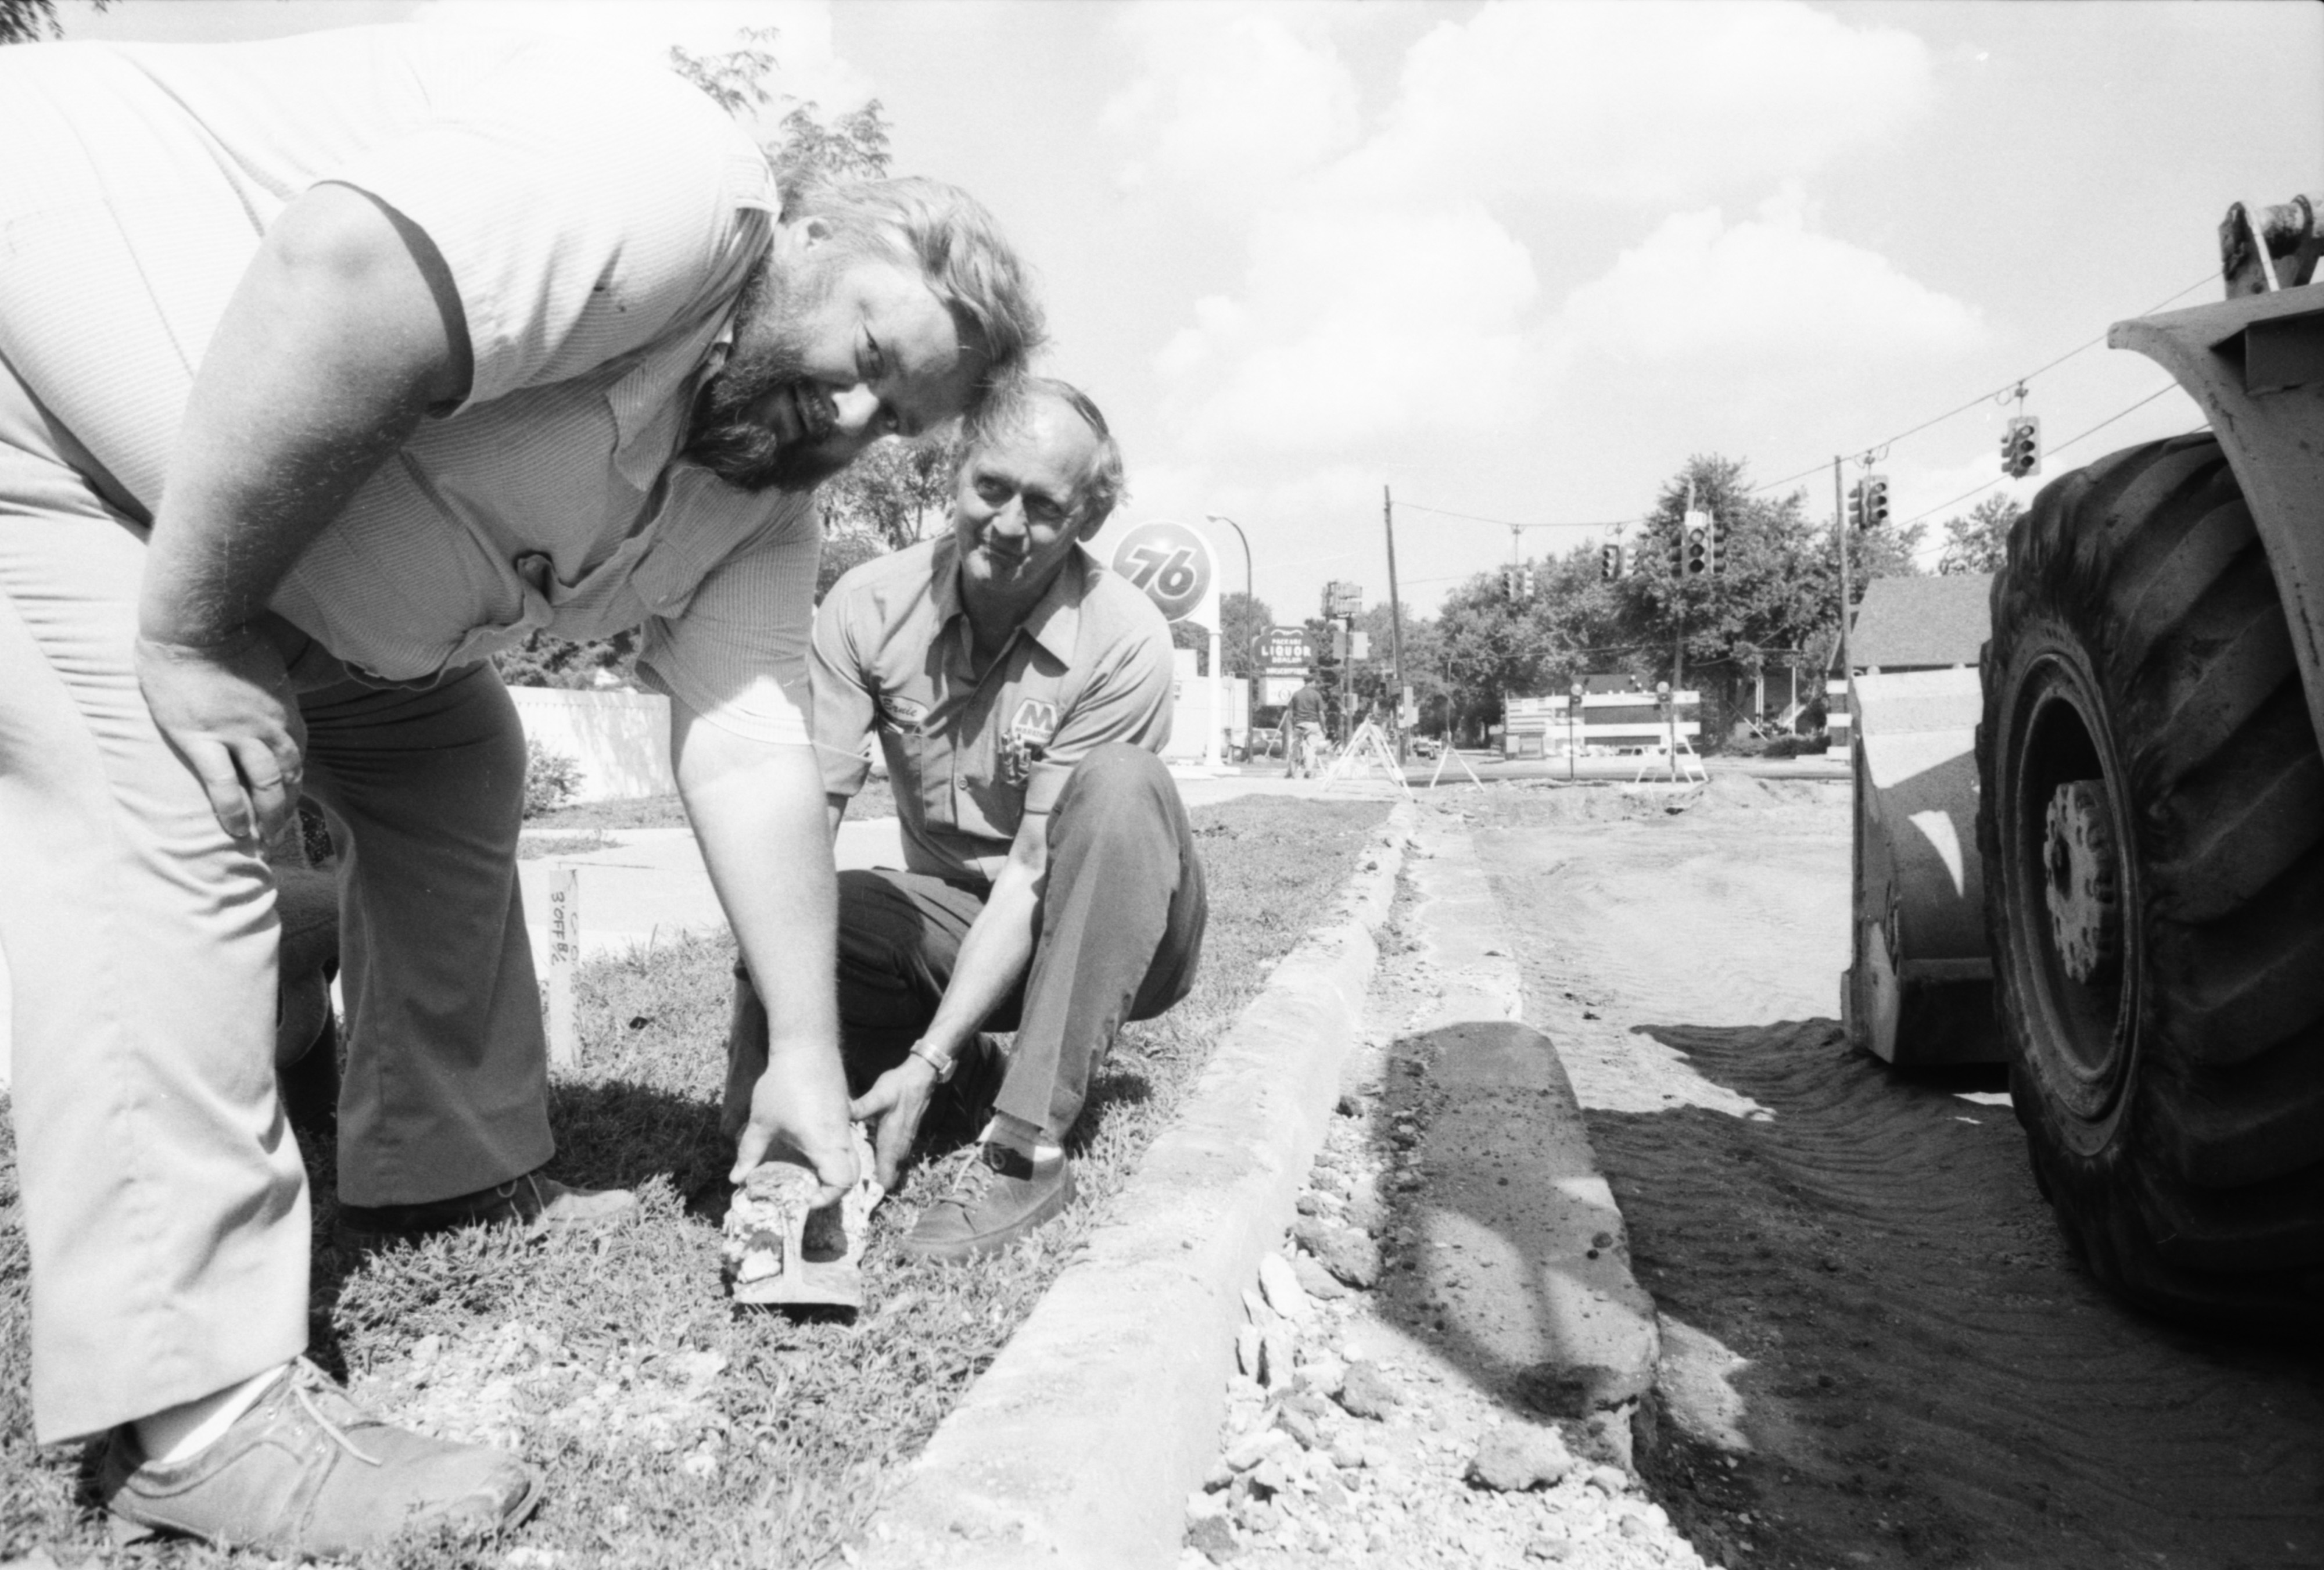 Ypsi-Ann Interurban rails unearthed on Packard St, September 1986 image